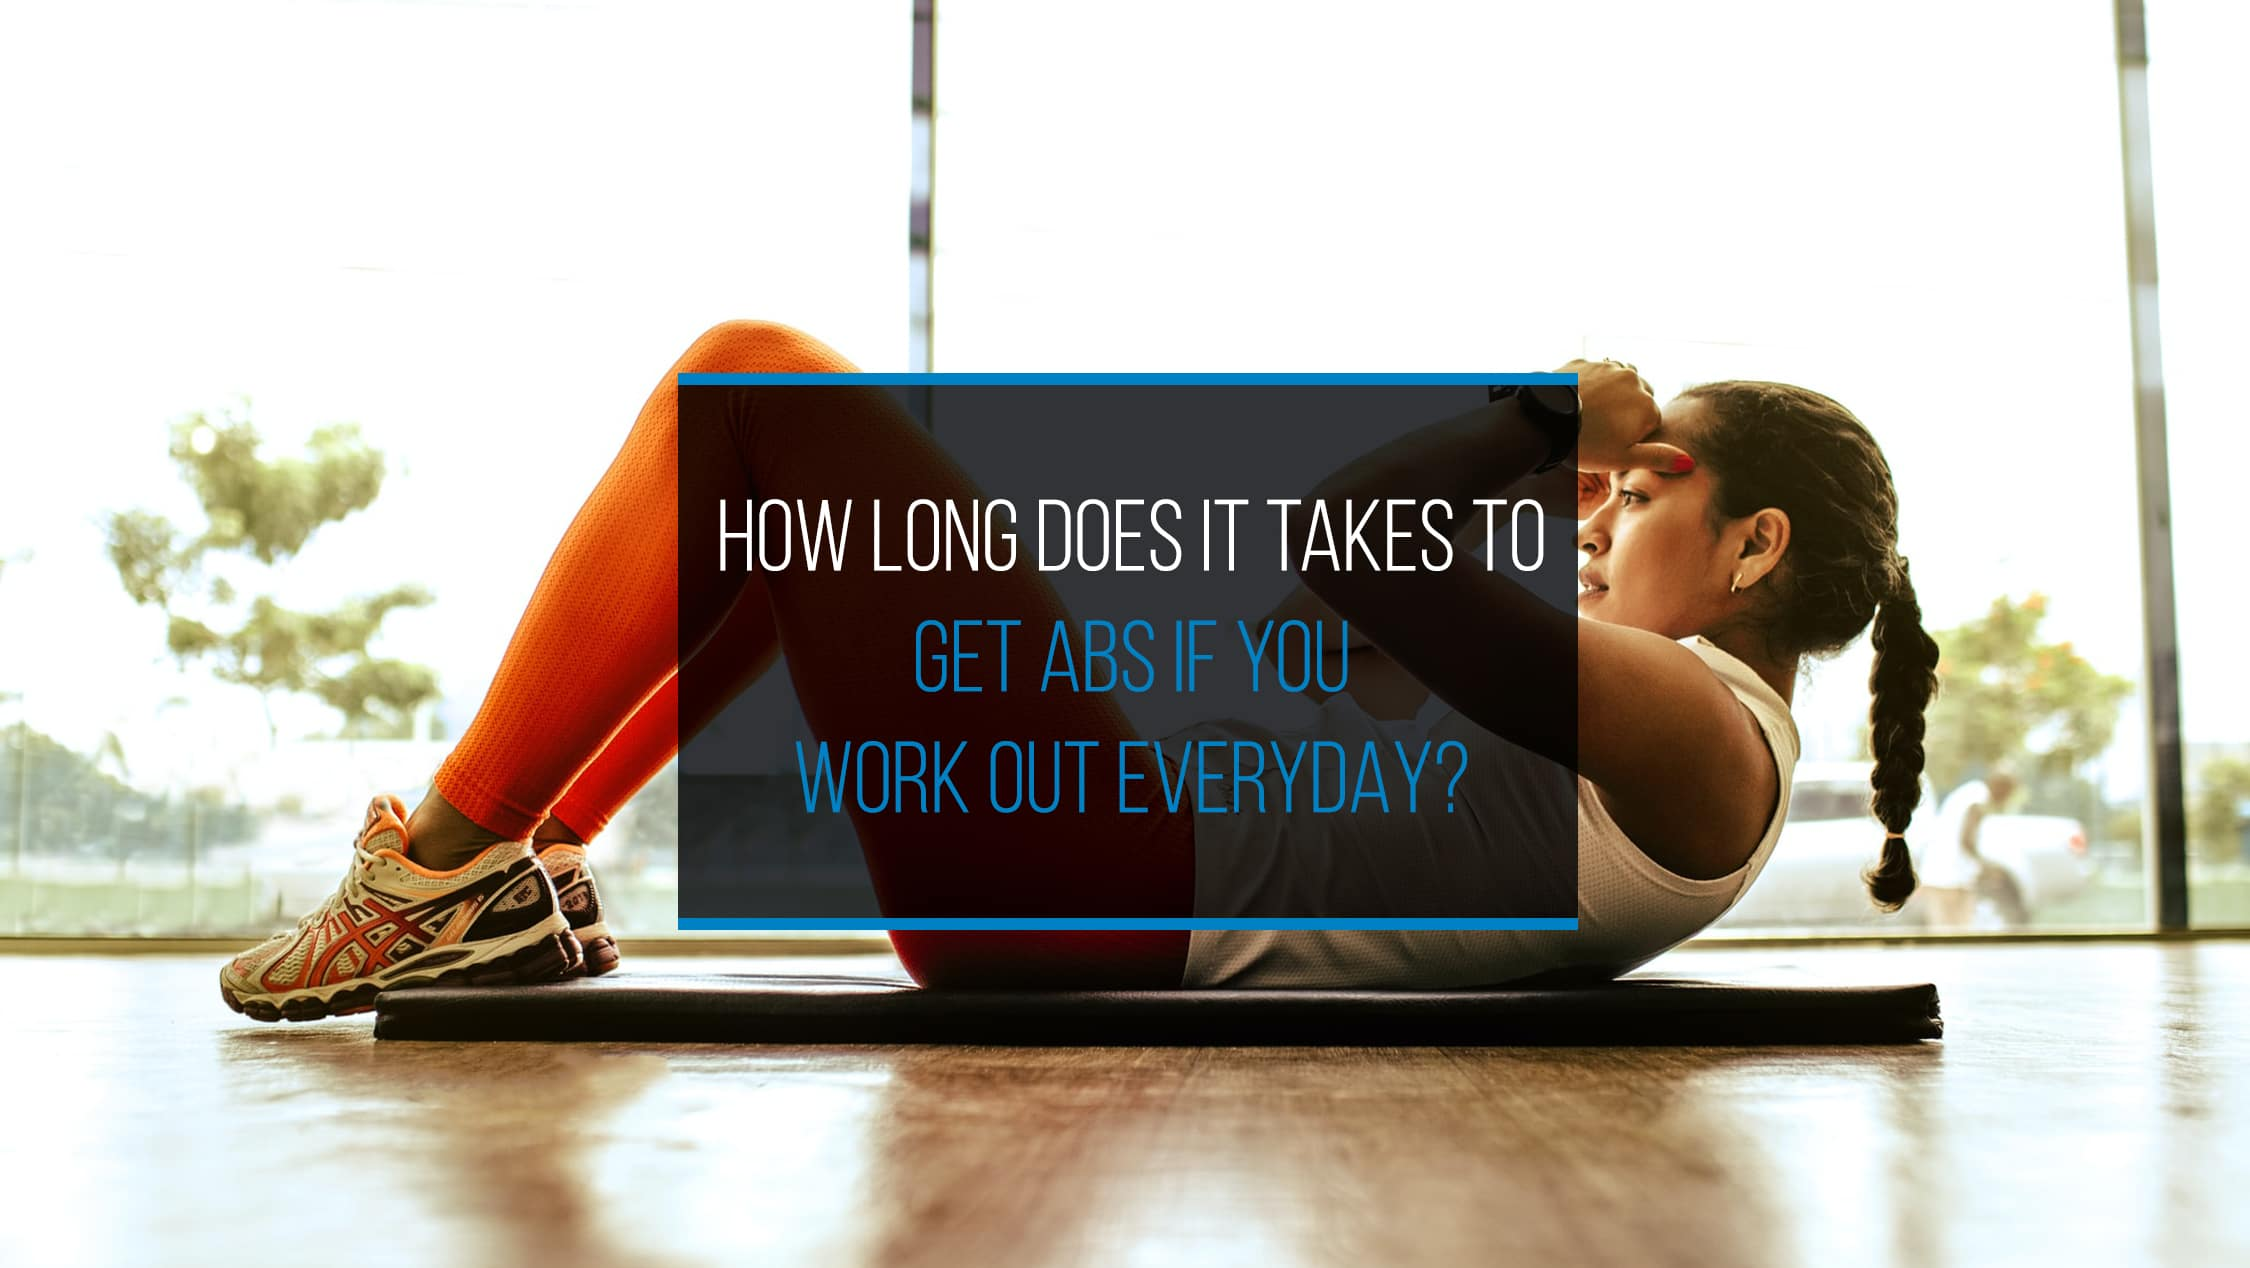 How Long Does It Take to Get Abs If You Work Out Everyday